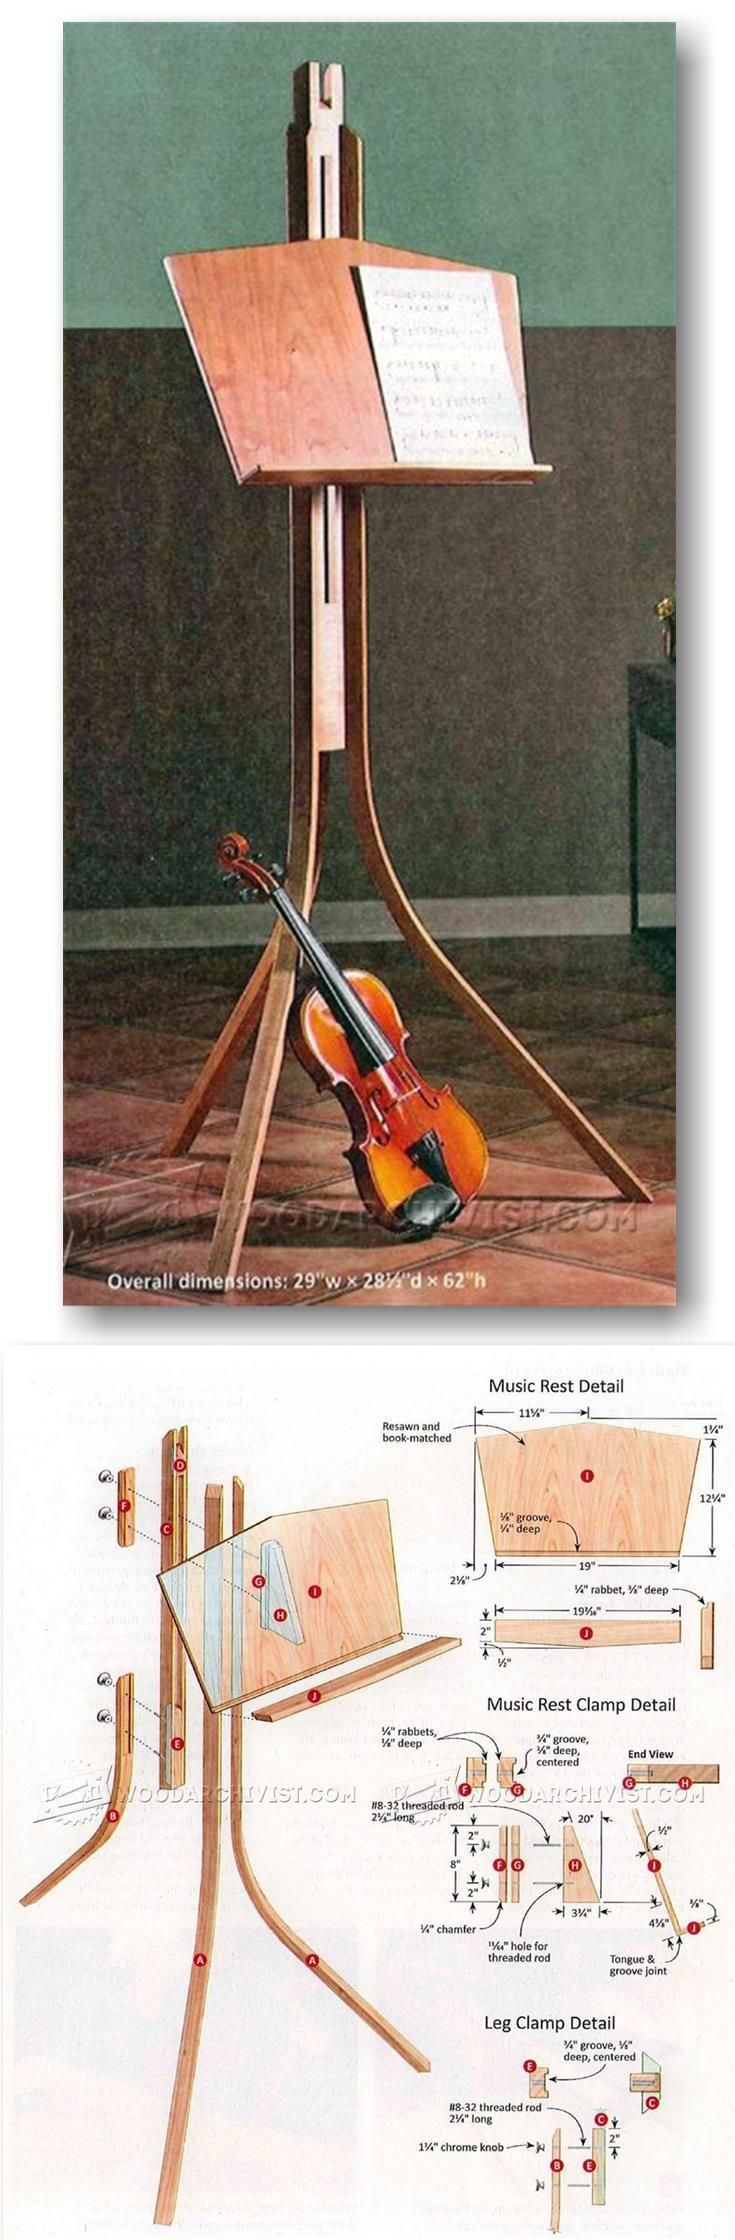 Wooden Music Stand Plans - Woodworking Plans and Projects | WoodArchivist.com